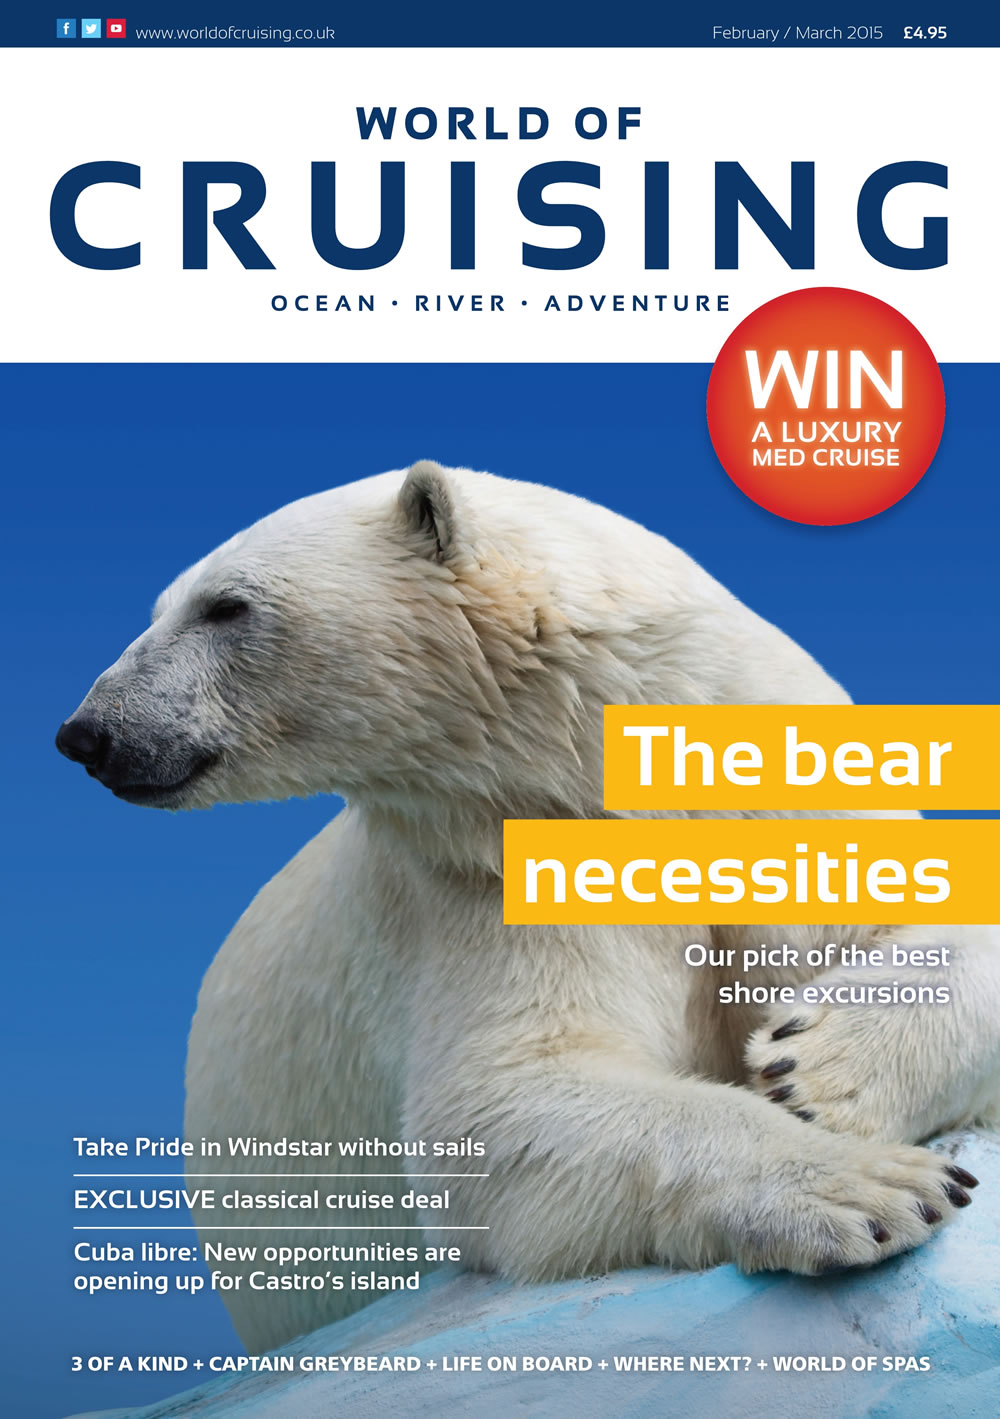 World of Cruising Magazine - February/March 2015